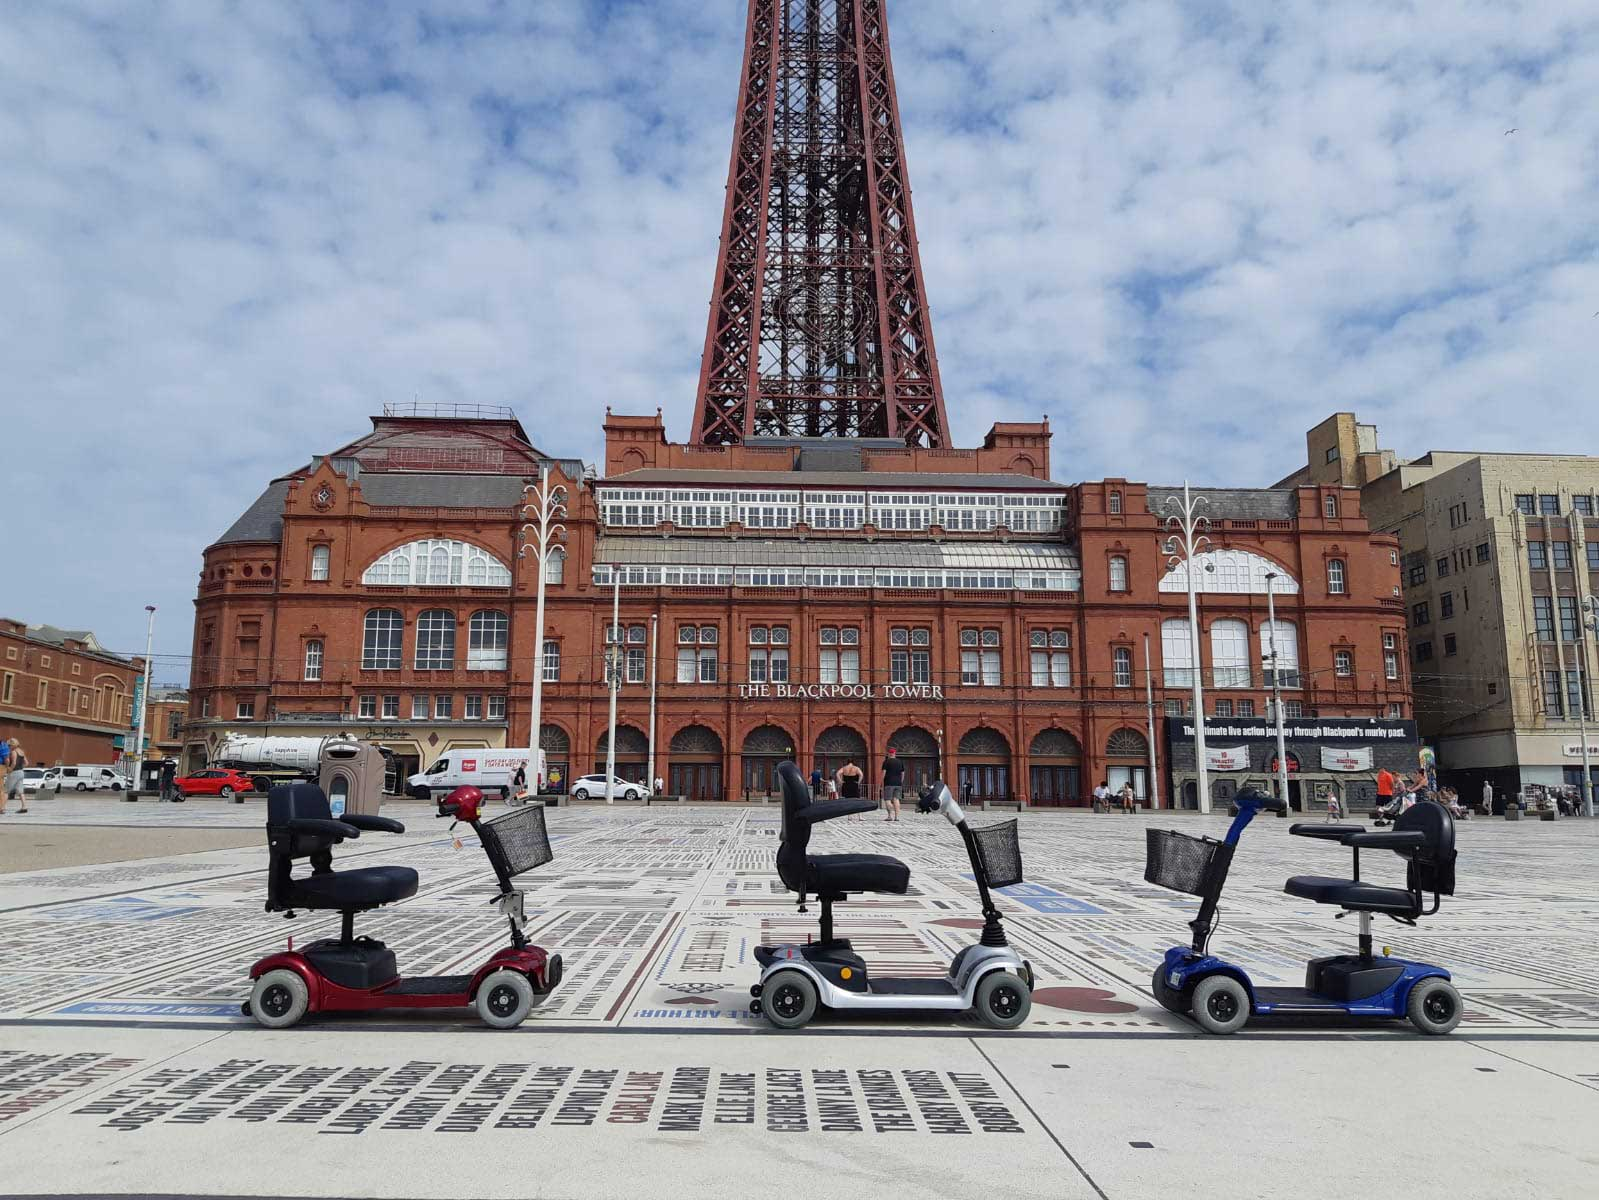 3 Mobility Scooters by Blackpool Tower